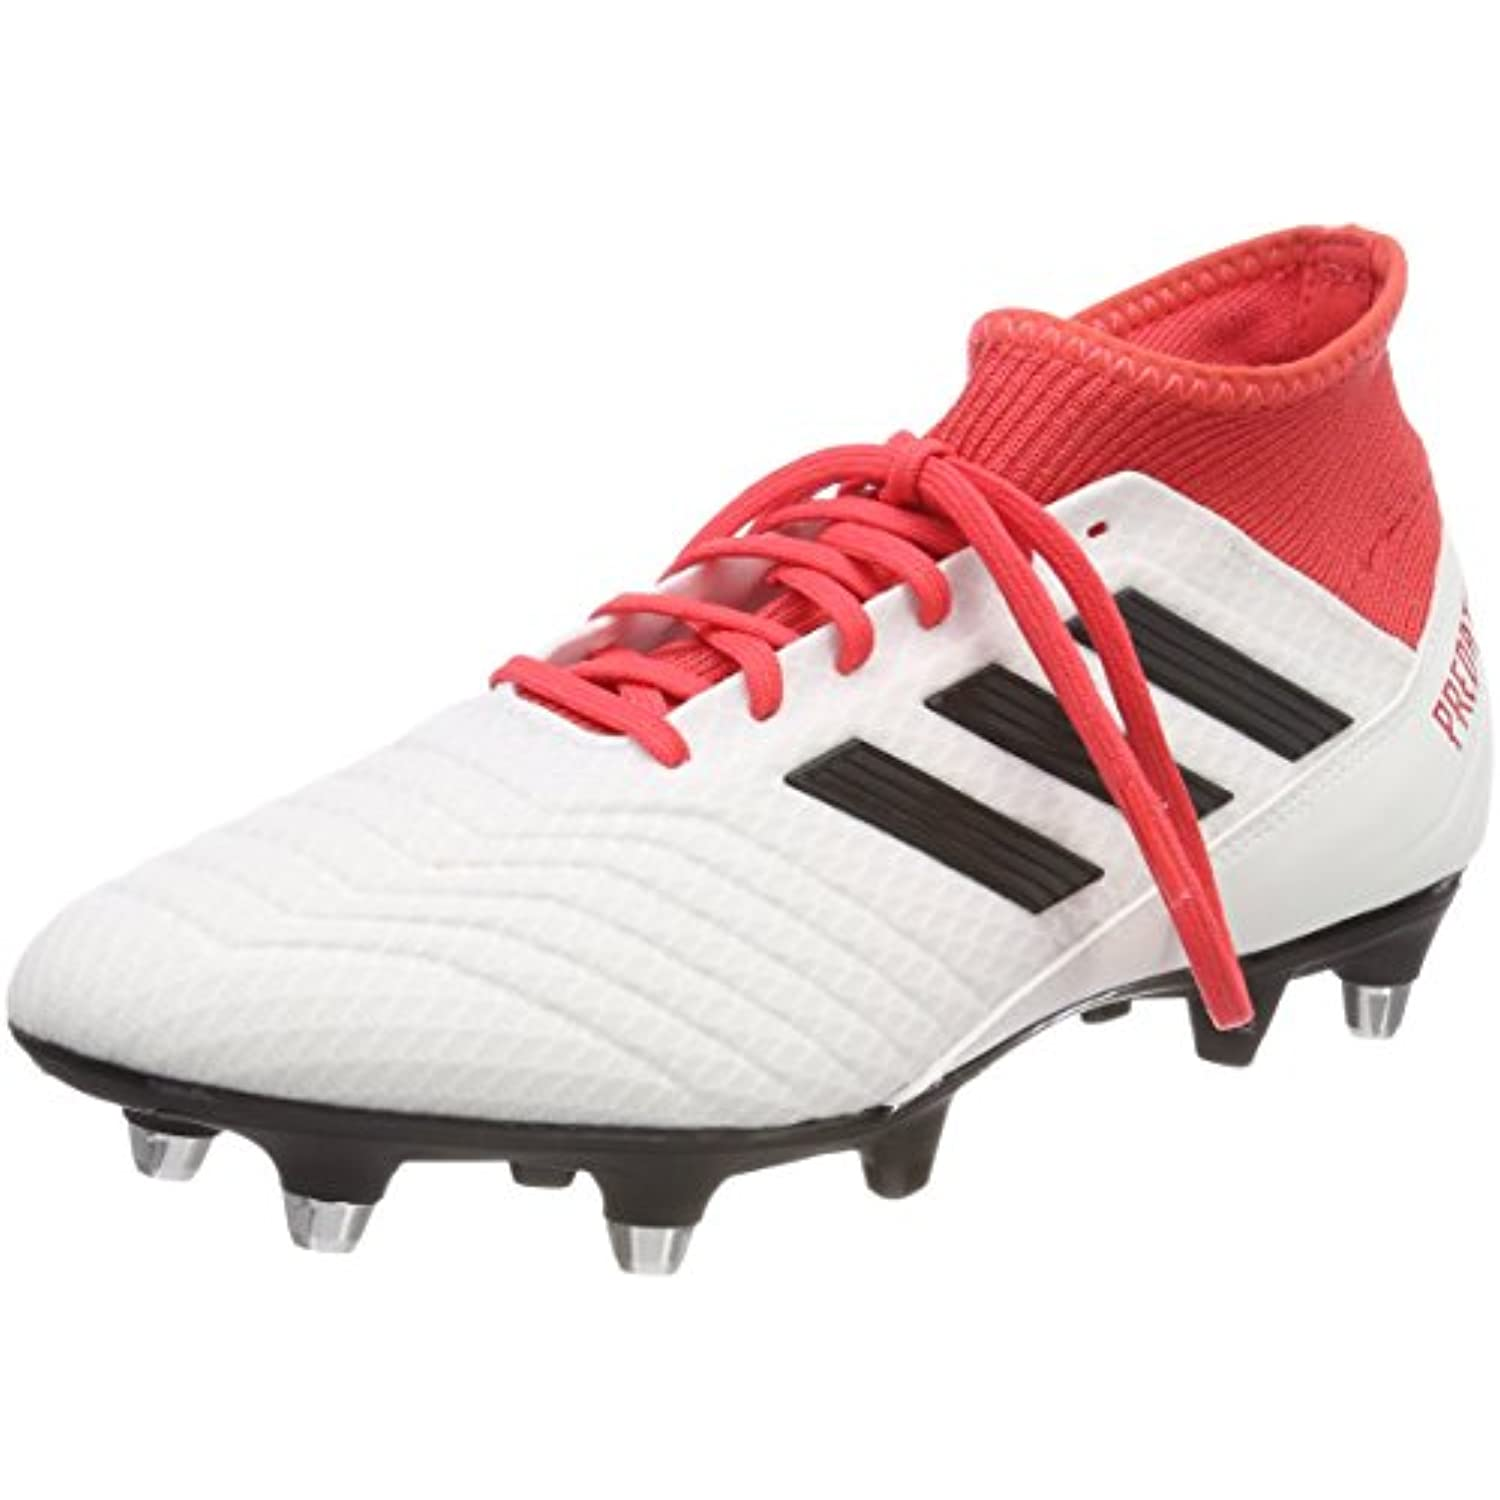 Adidas PRougeator SG, Chaussures Homme de Football Homme Chaussures - B0788LQY2P - a46db7